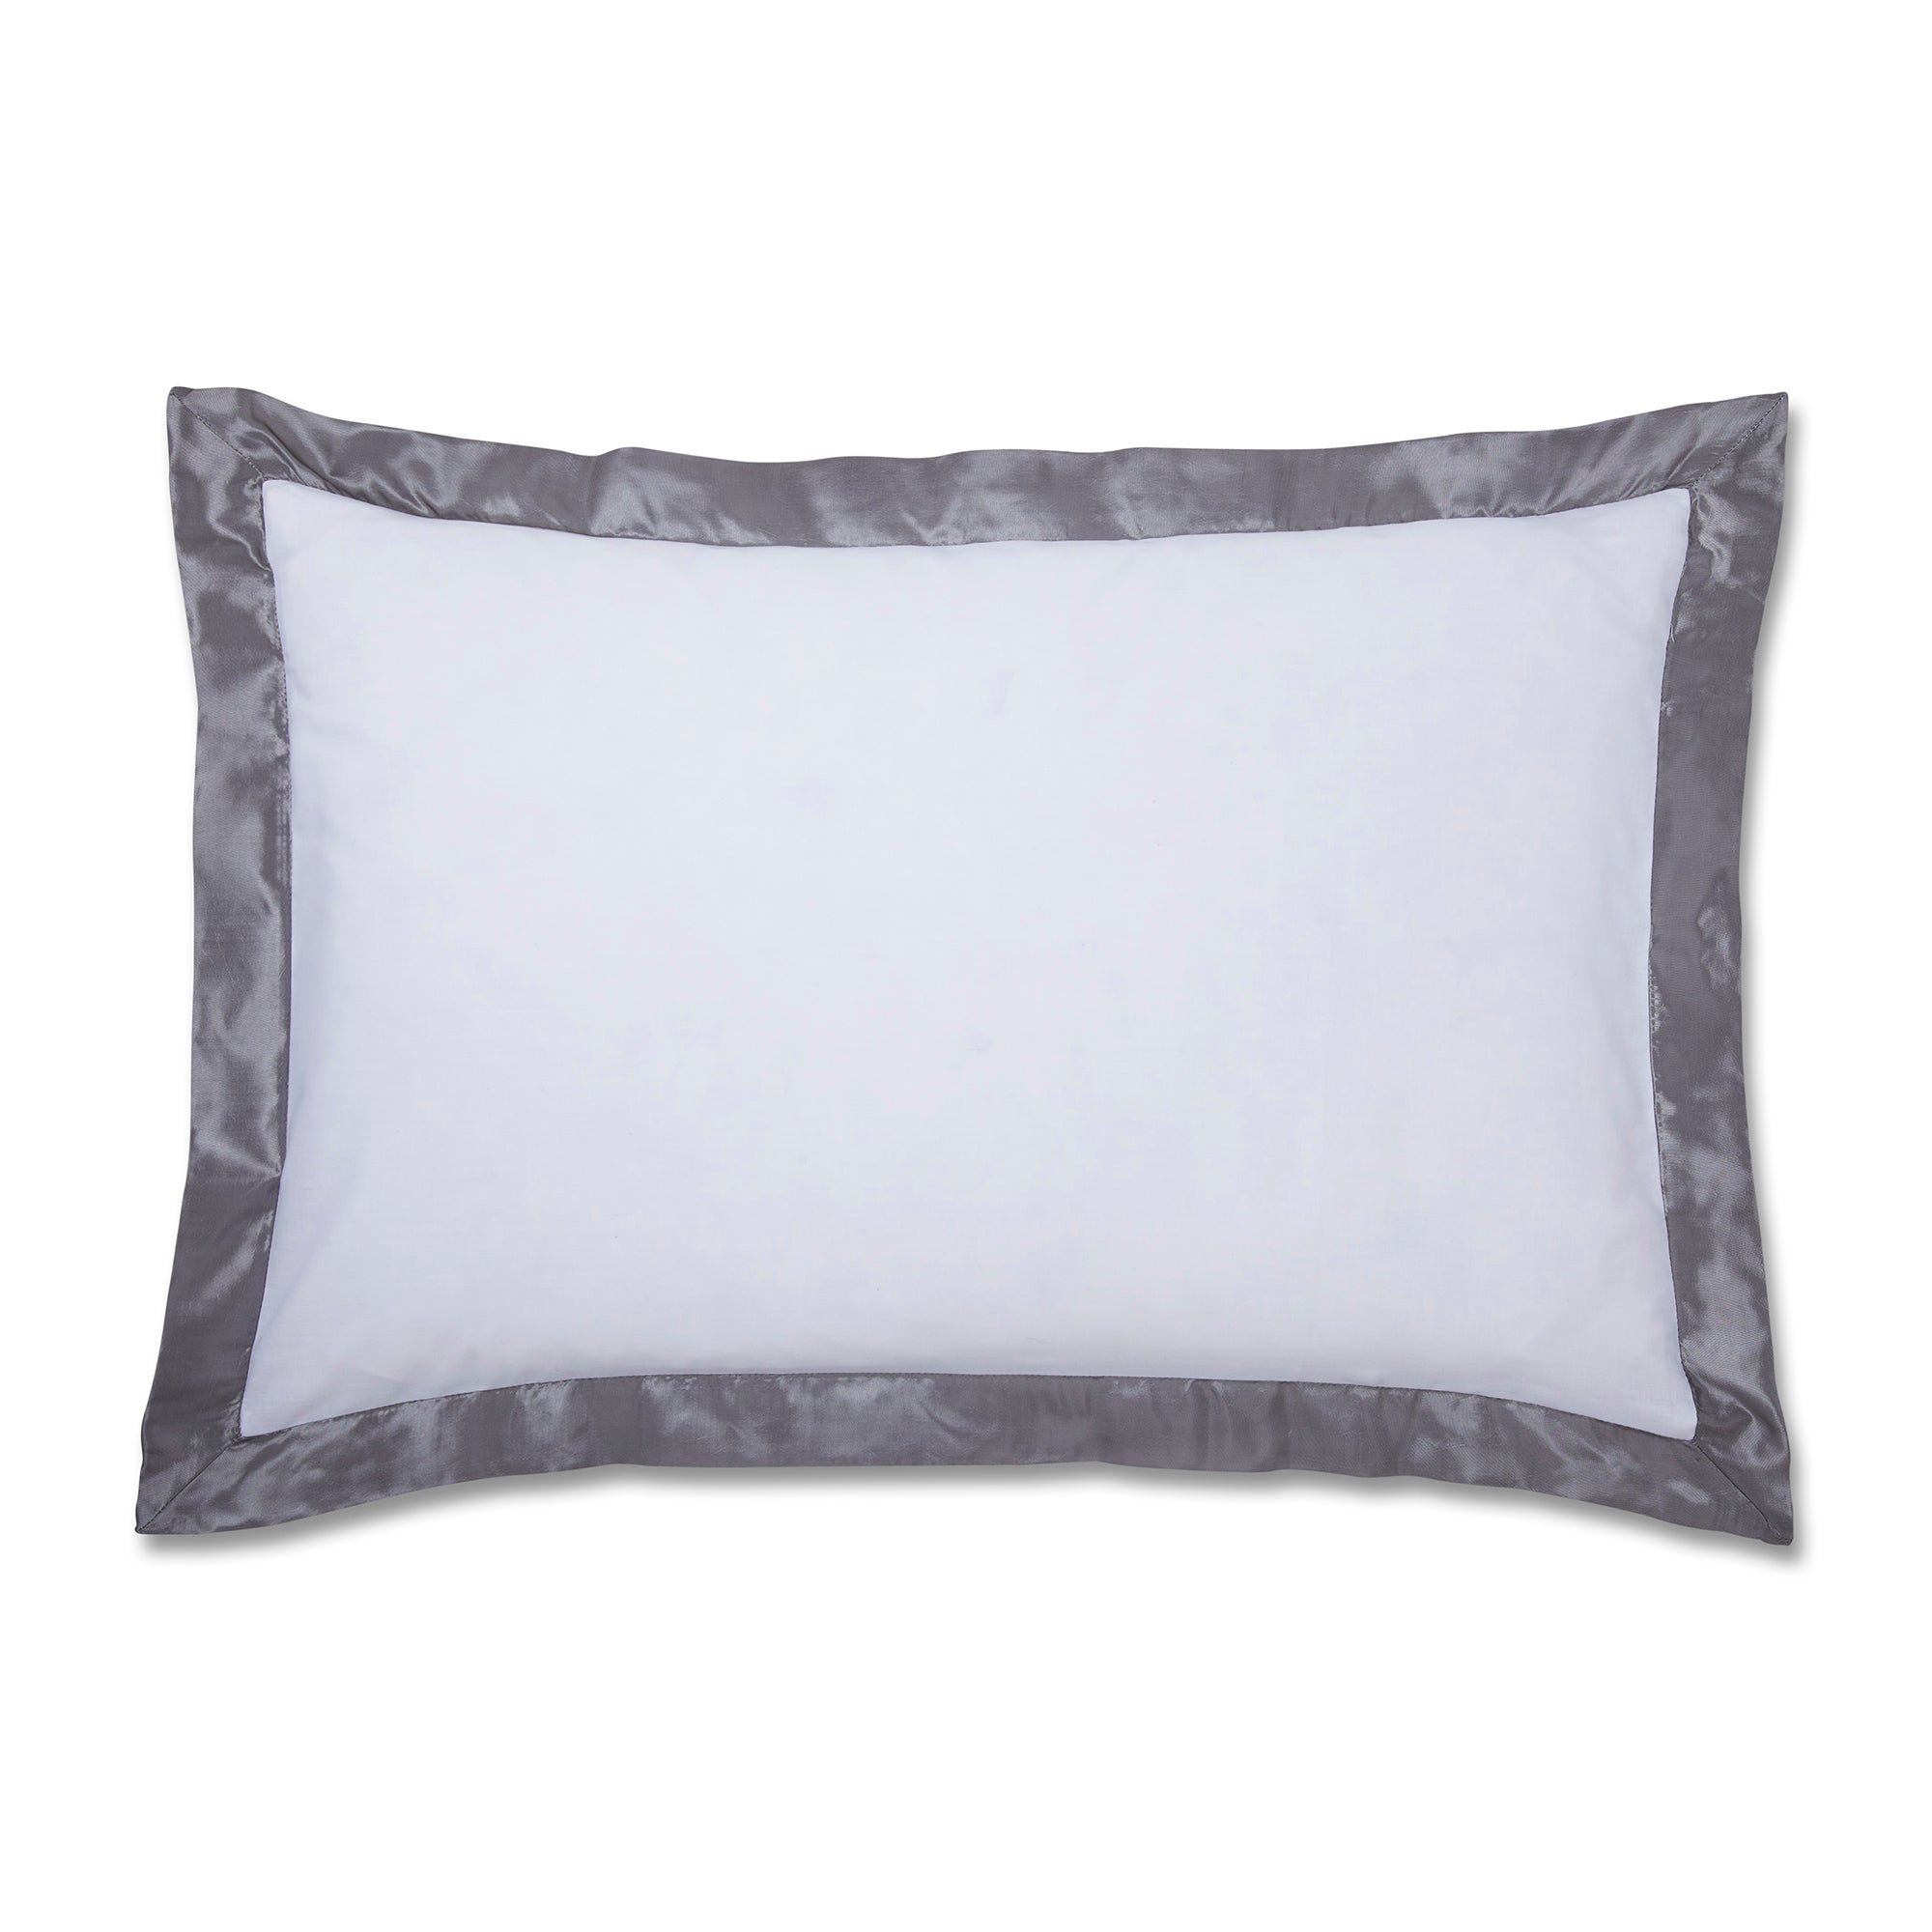 Silver Roma Damask Collection Oxford Pillowcase